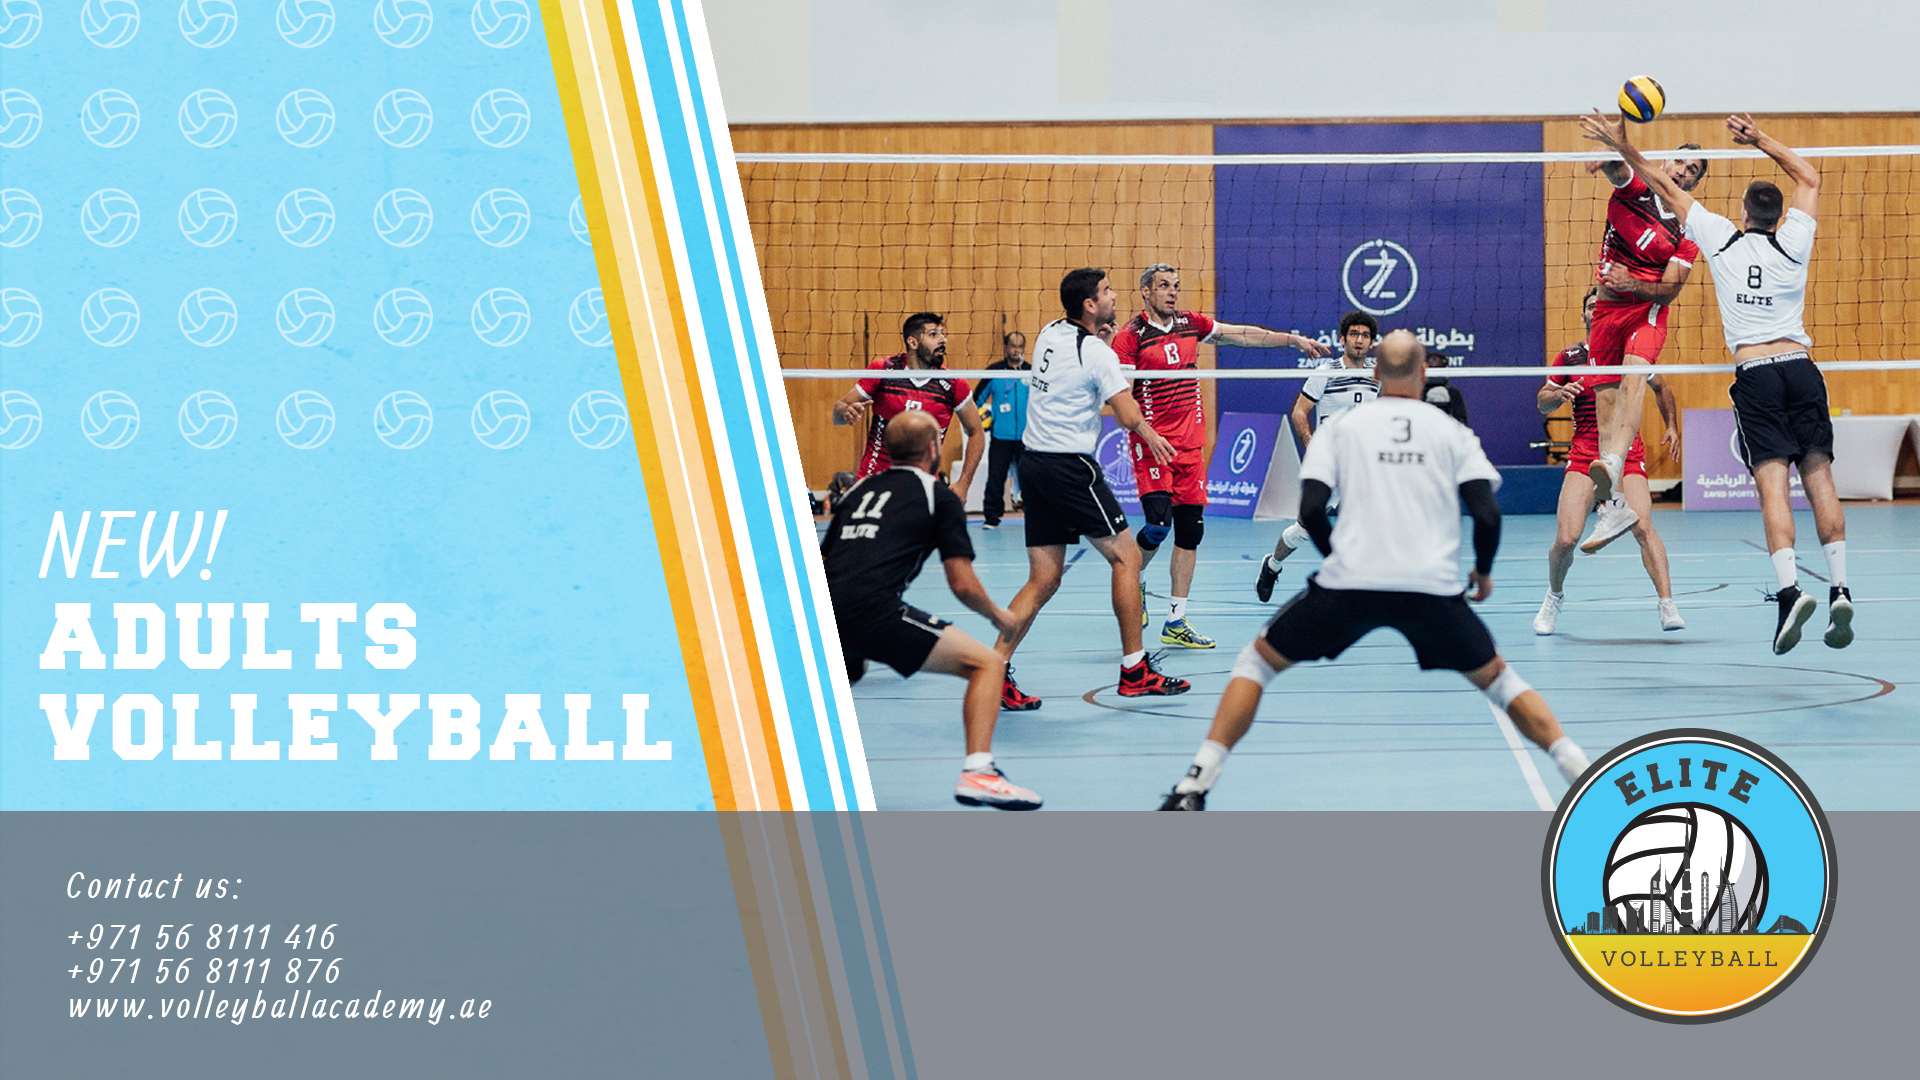 Adult Volleyball Volleyball Academy Dubai